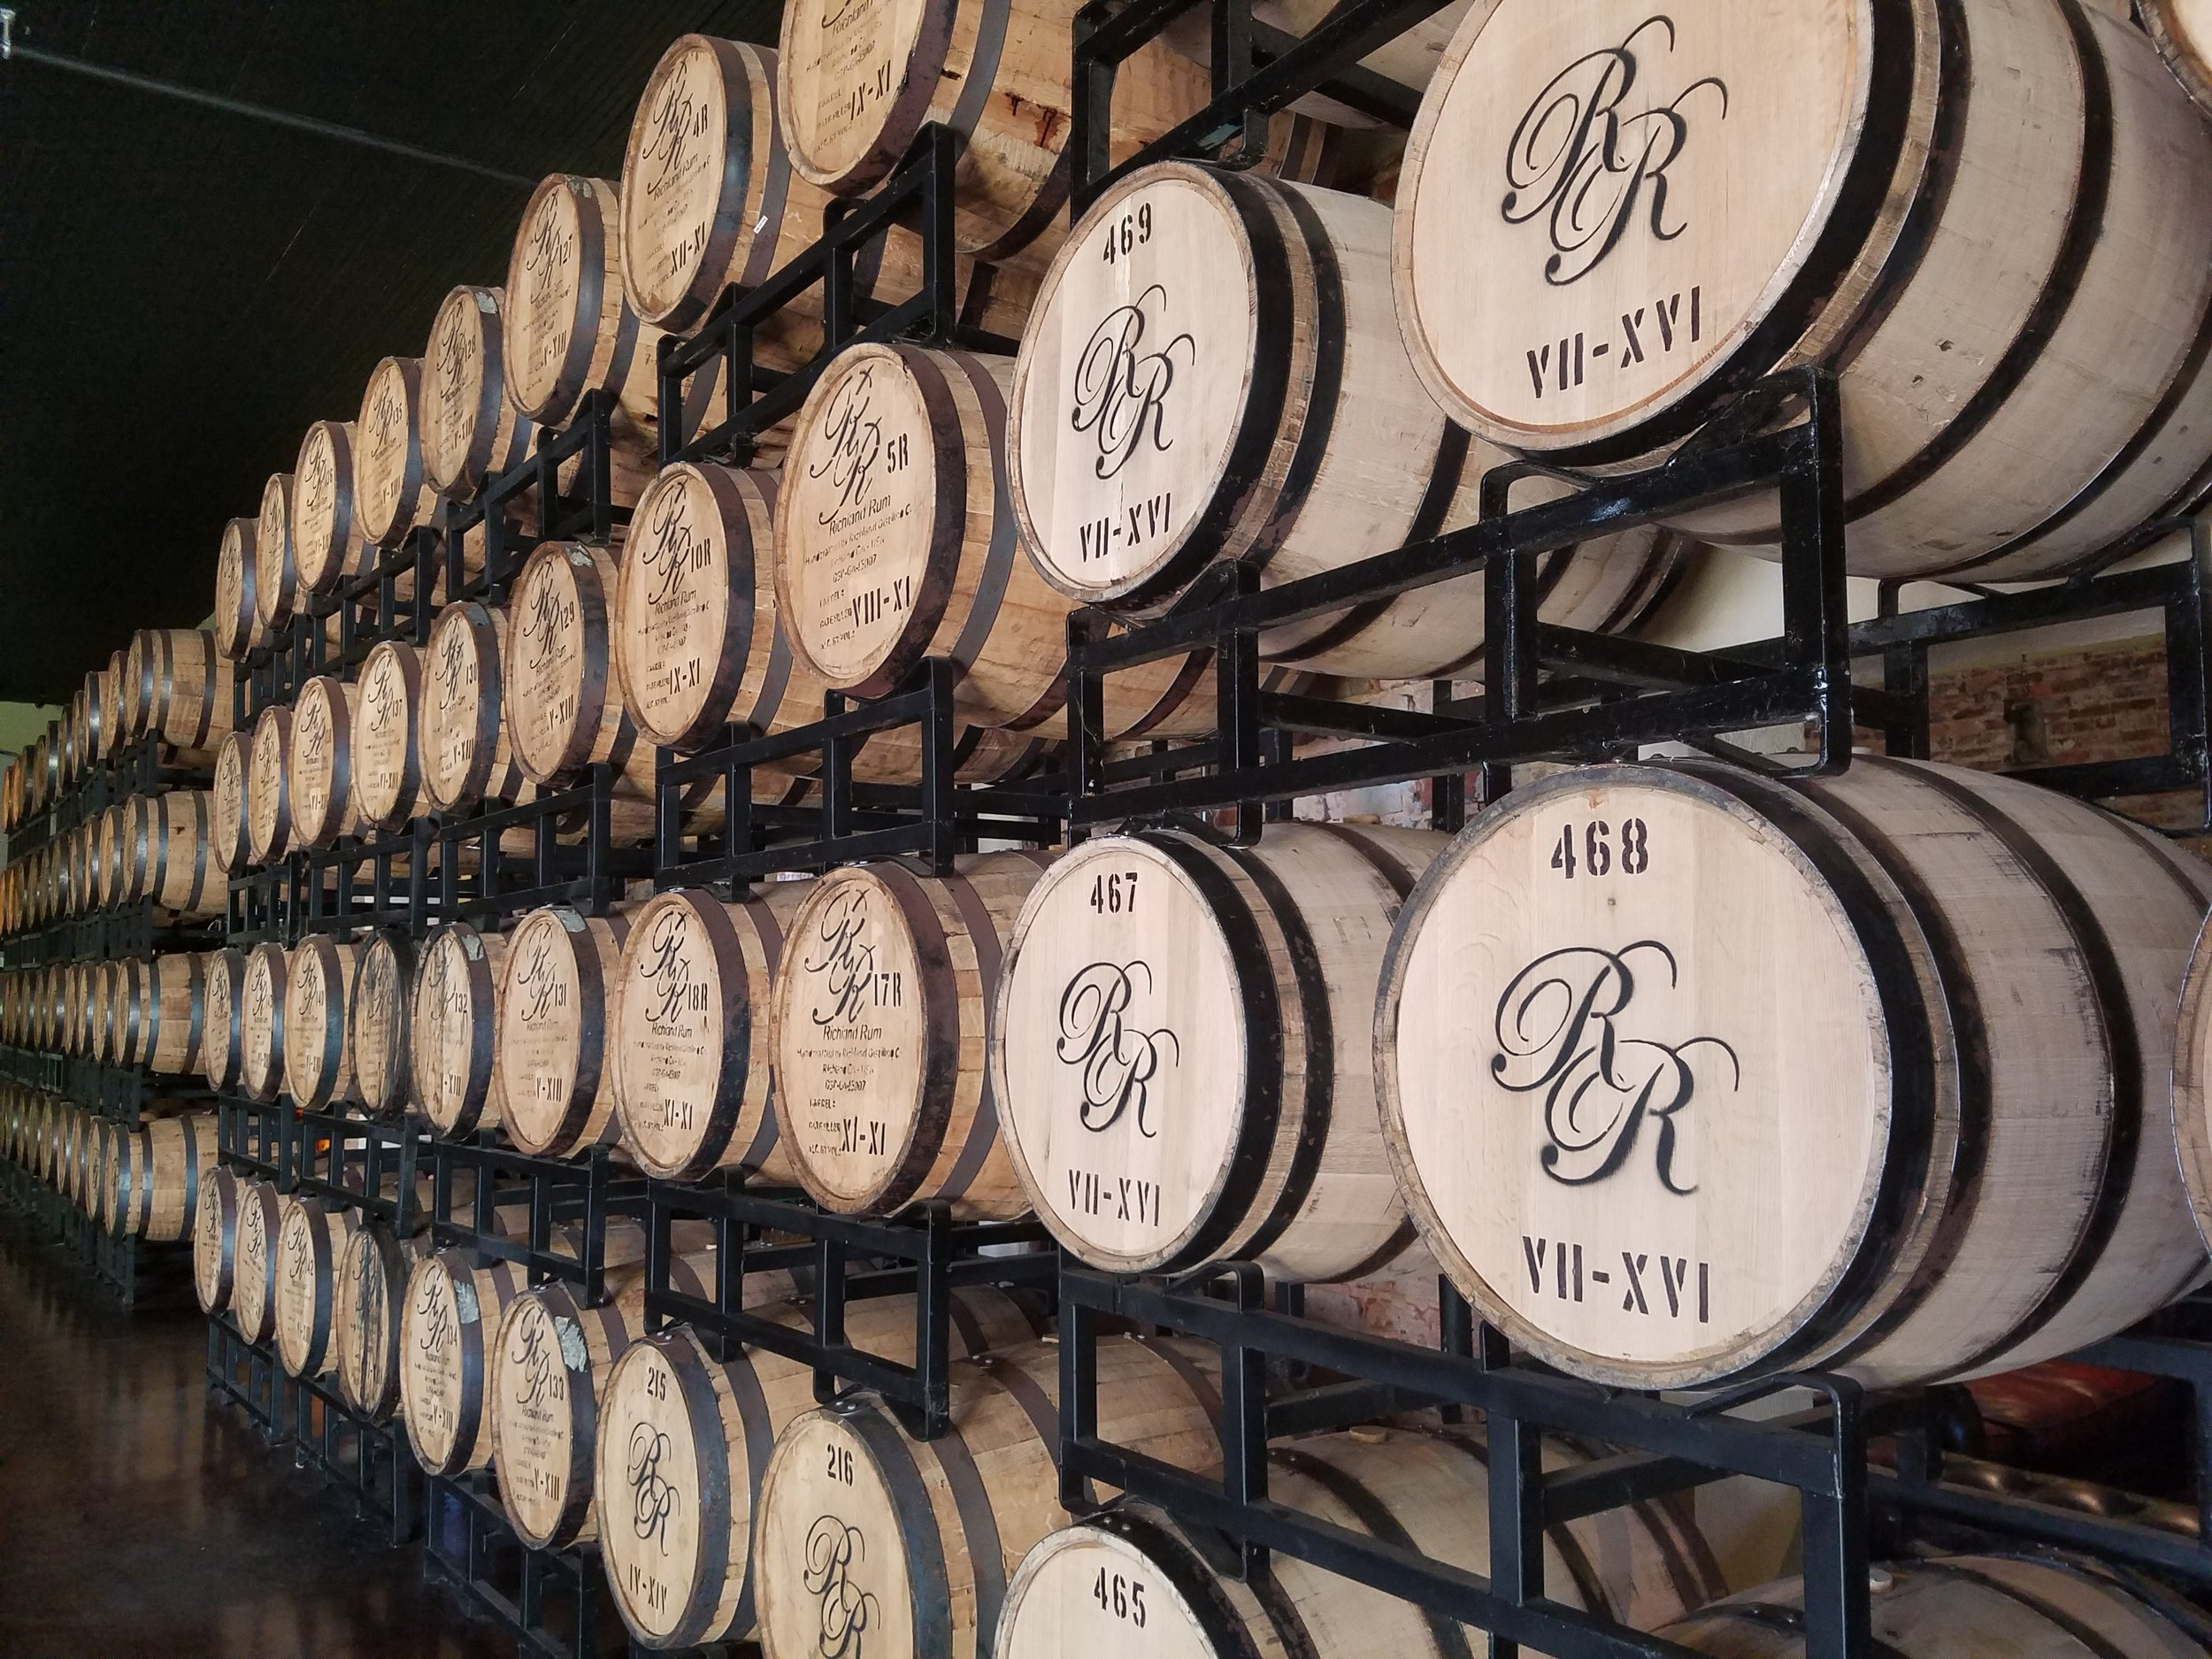 The aging barrels are stored throughout the buildings, which are original to the downtown.